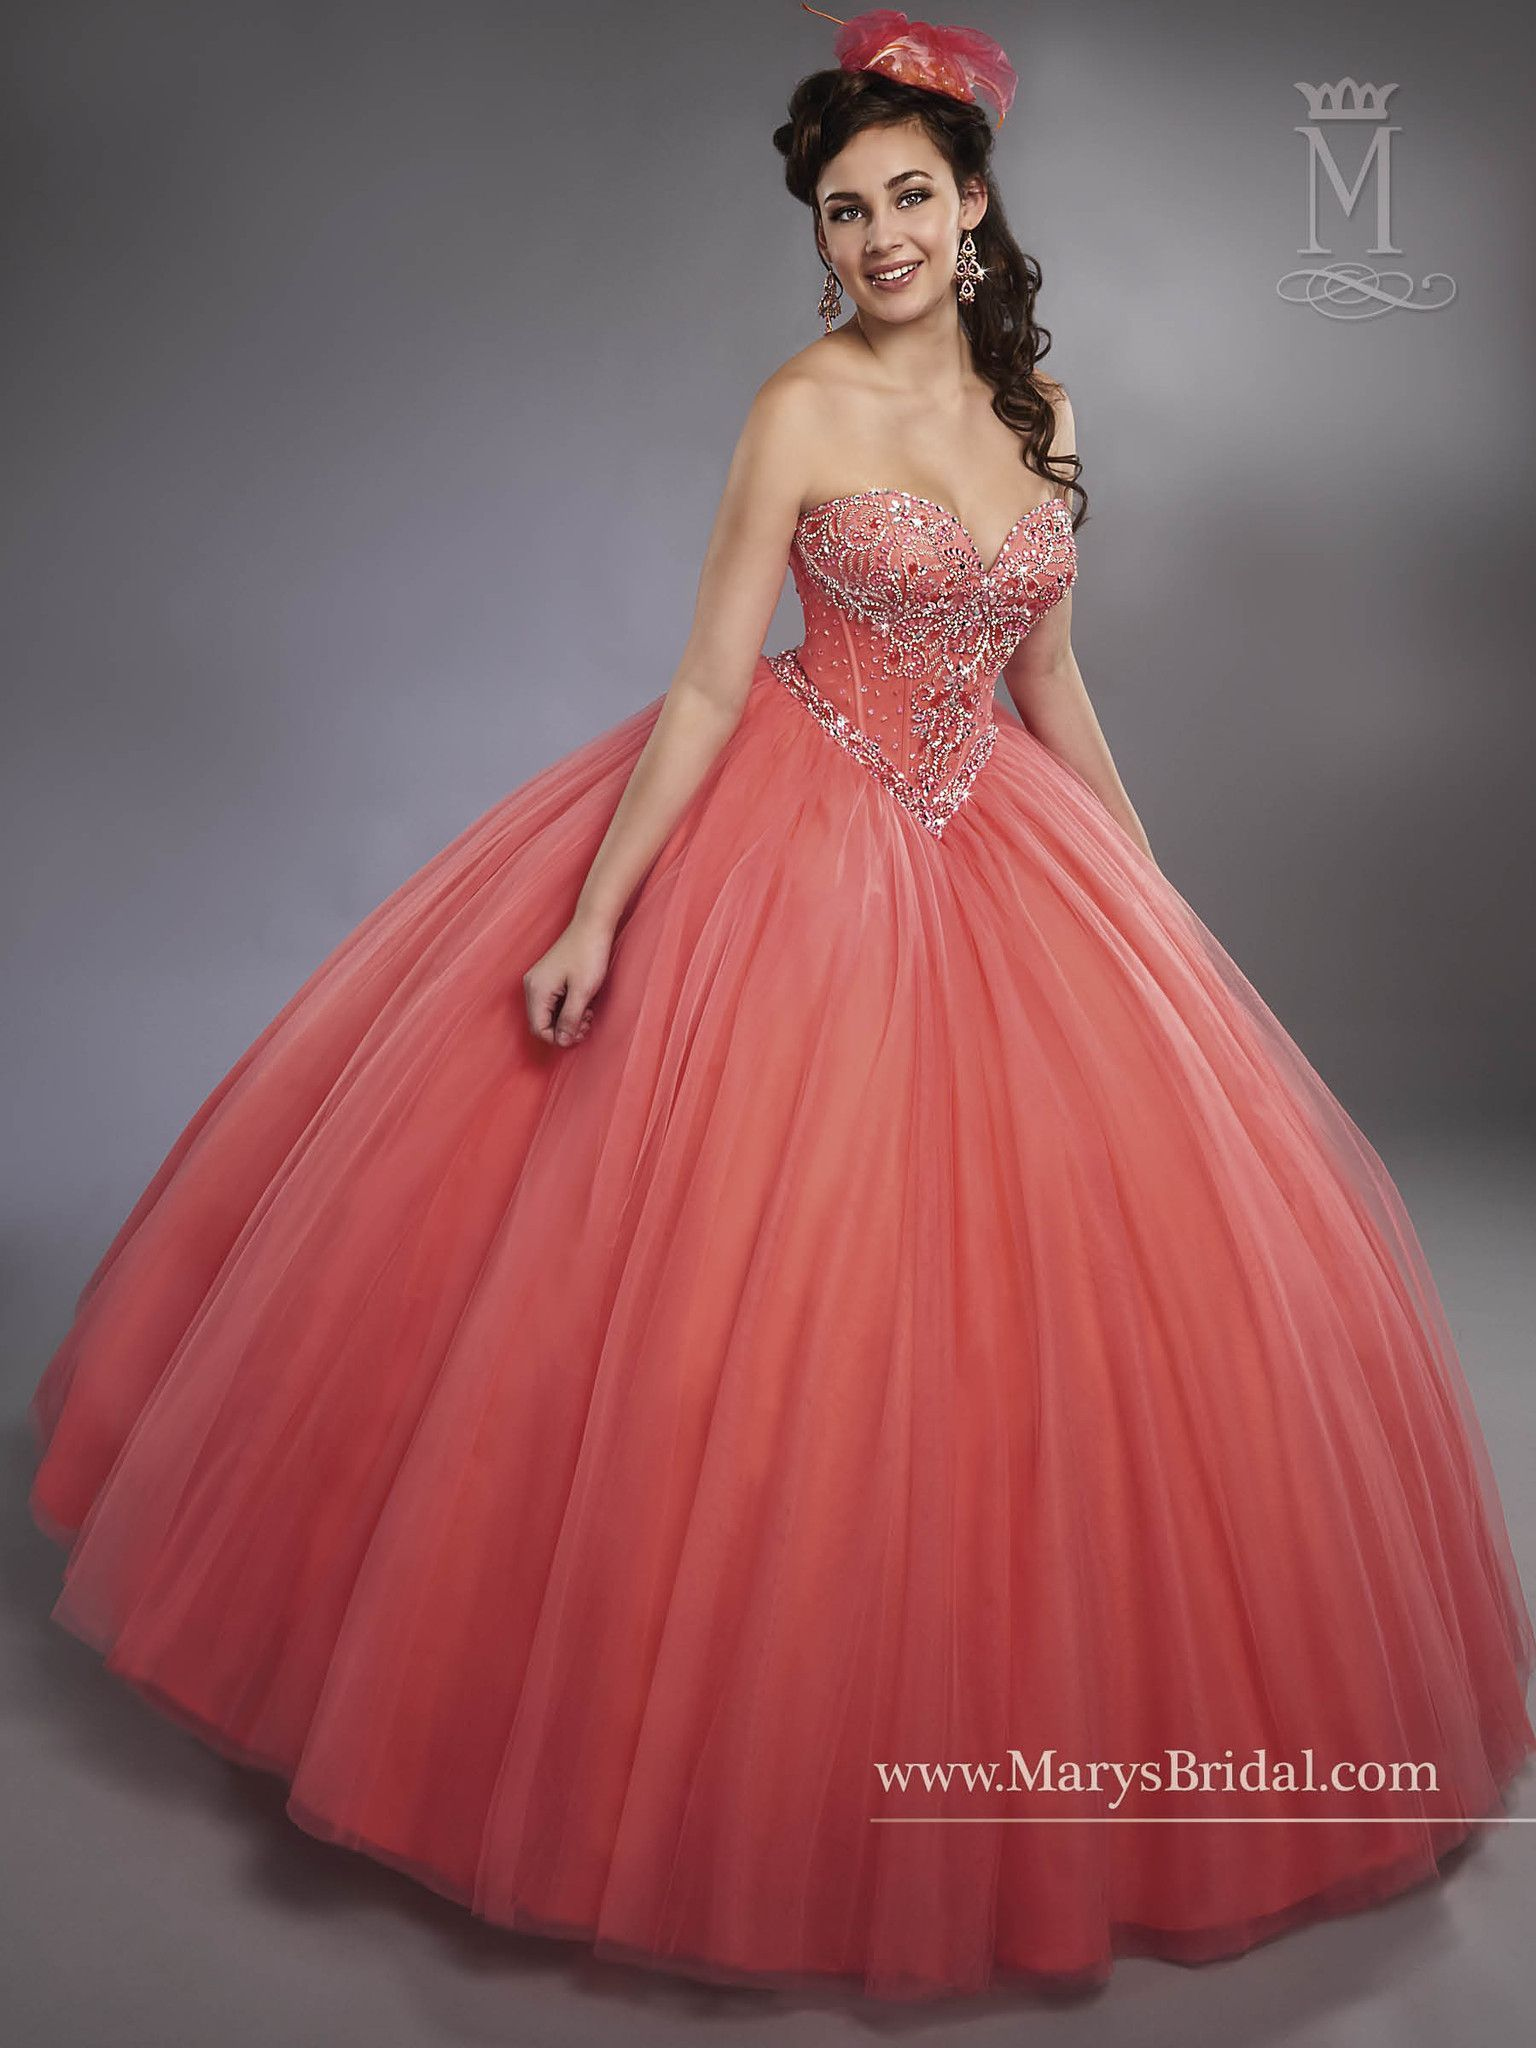 Mary\'s Bridal Beloving Collection Quinceanera Dress Style 4780 ...